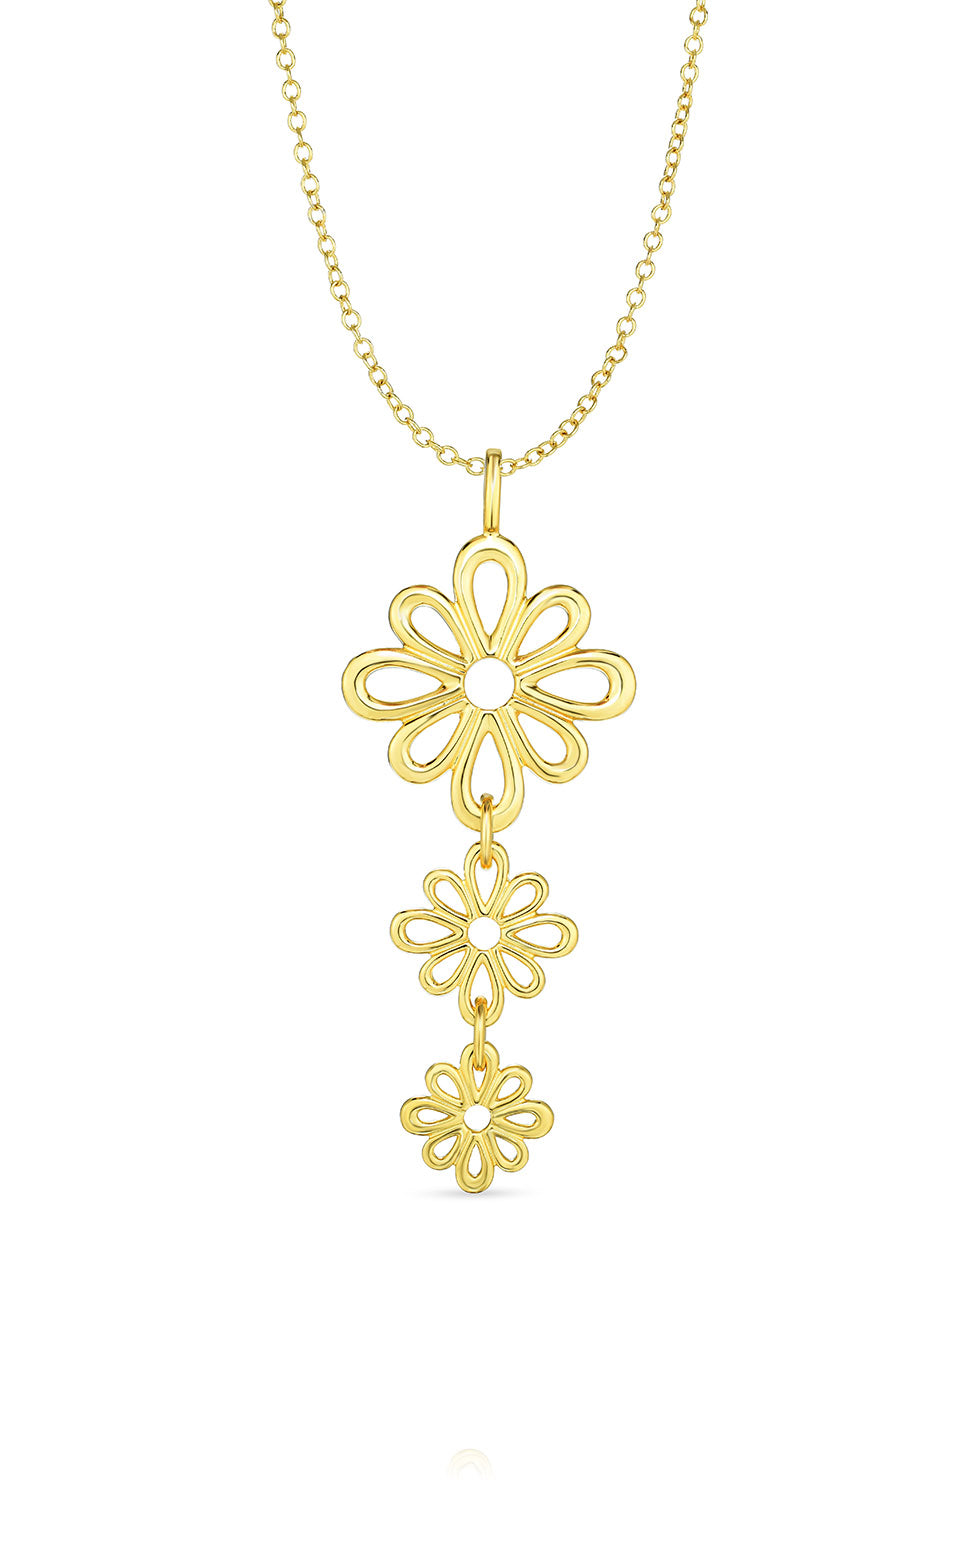 Ramona Singer x ENCIRCLE NYC Small Flower Pendant